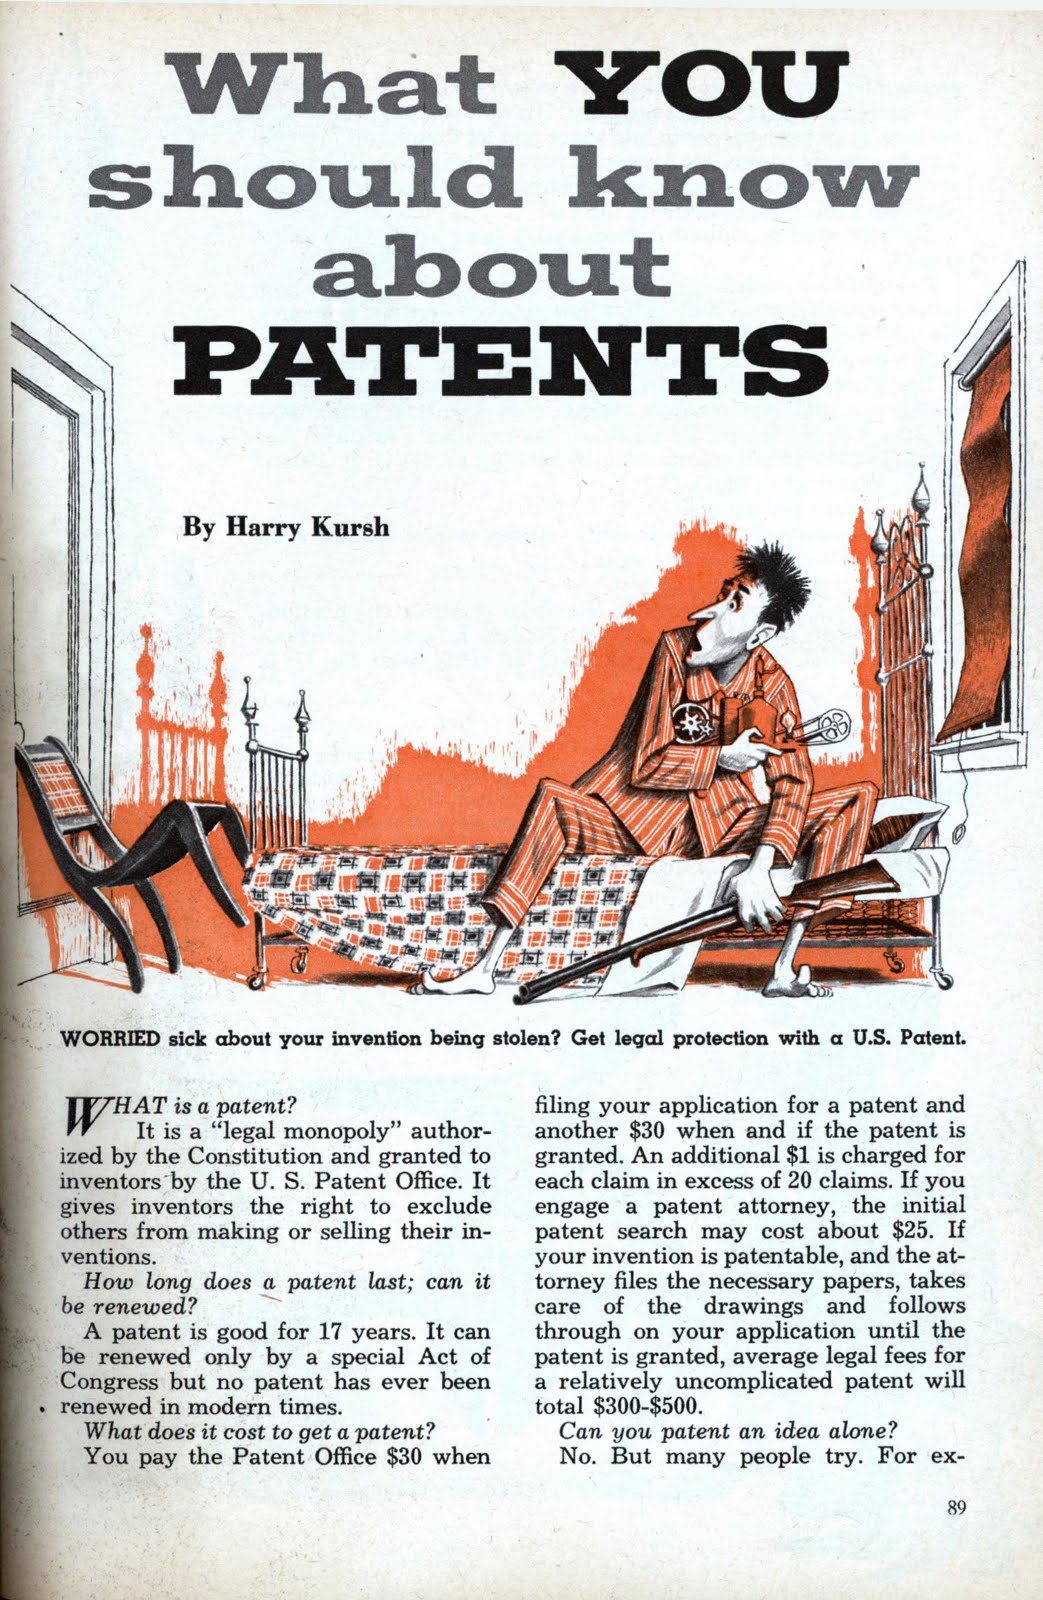 know about patents 0 place   the Western Cemetery, the Eastern Necropolis, and the Bal gay ...